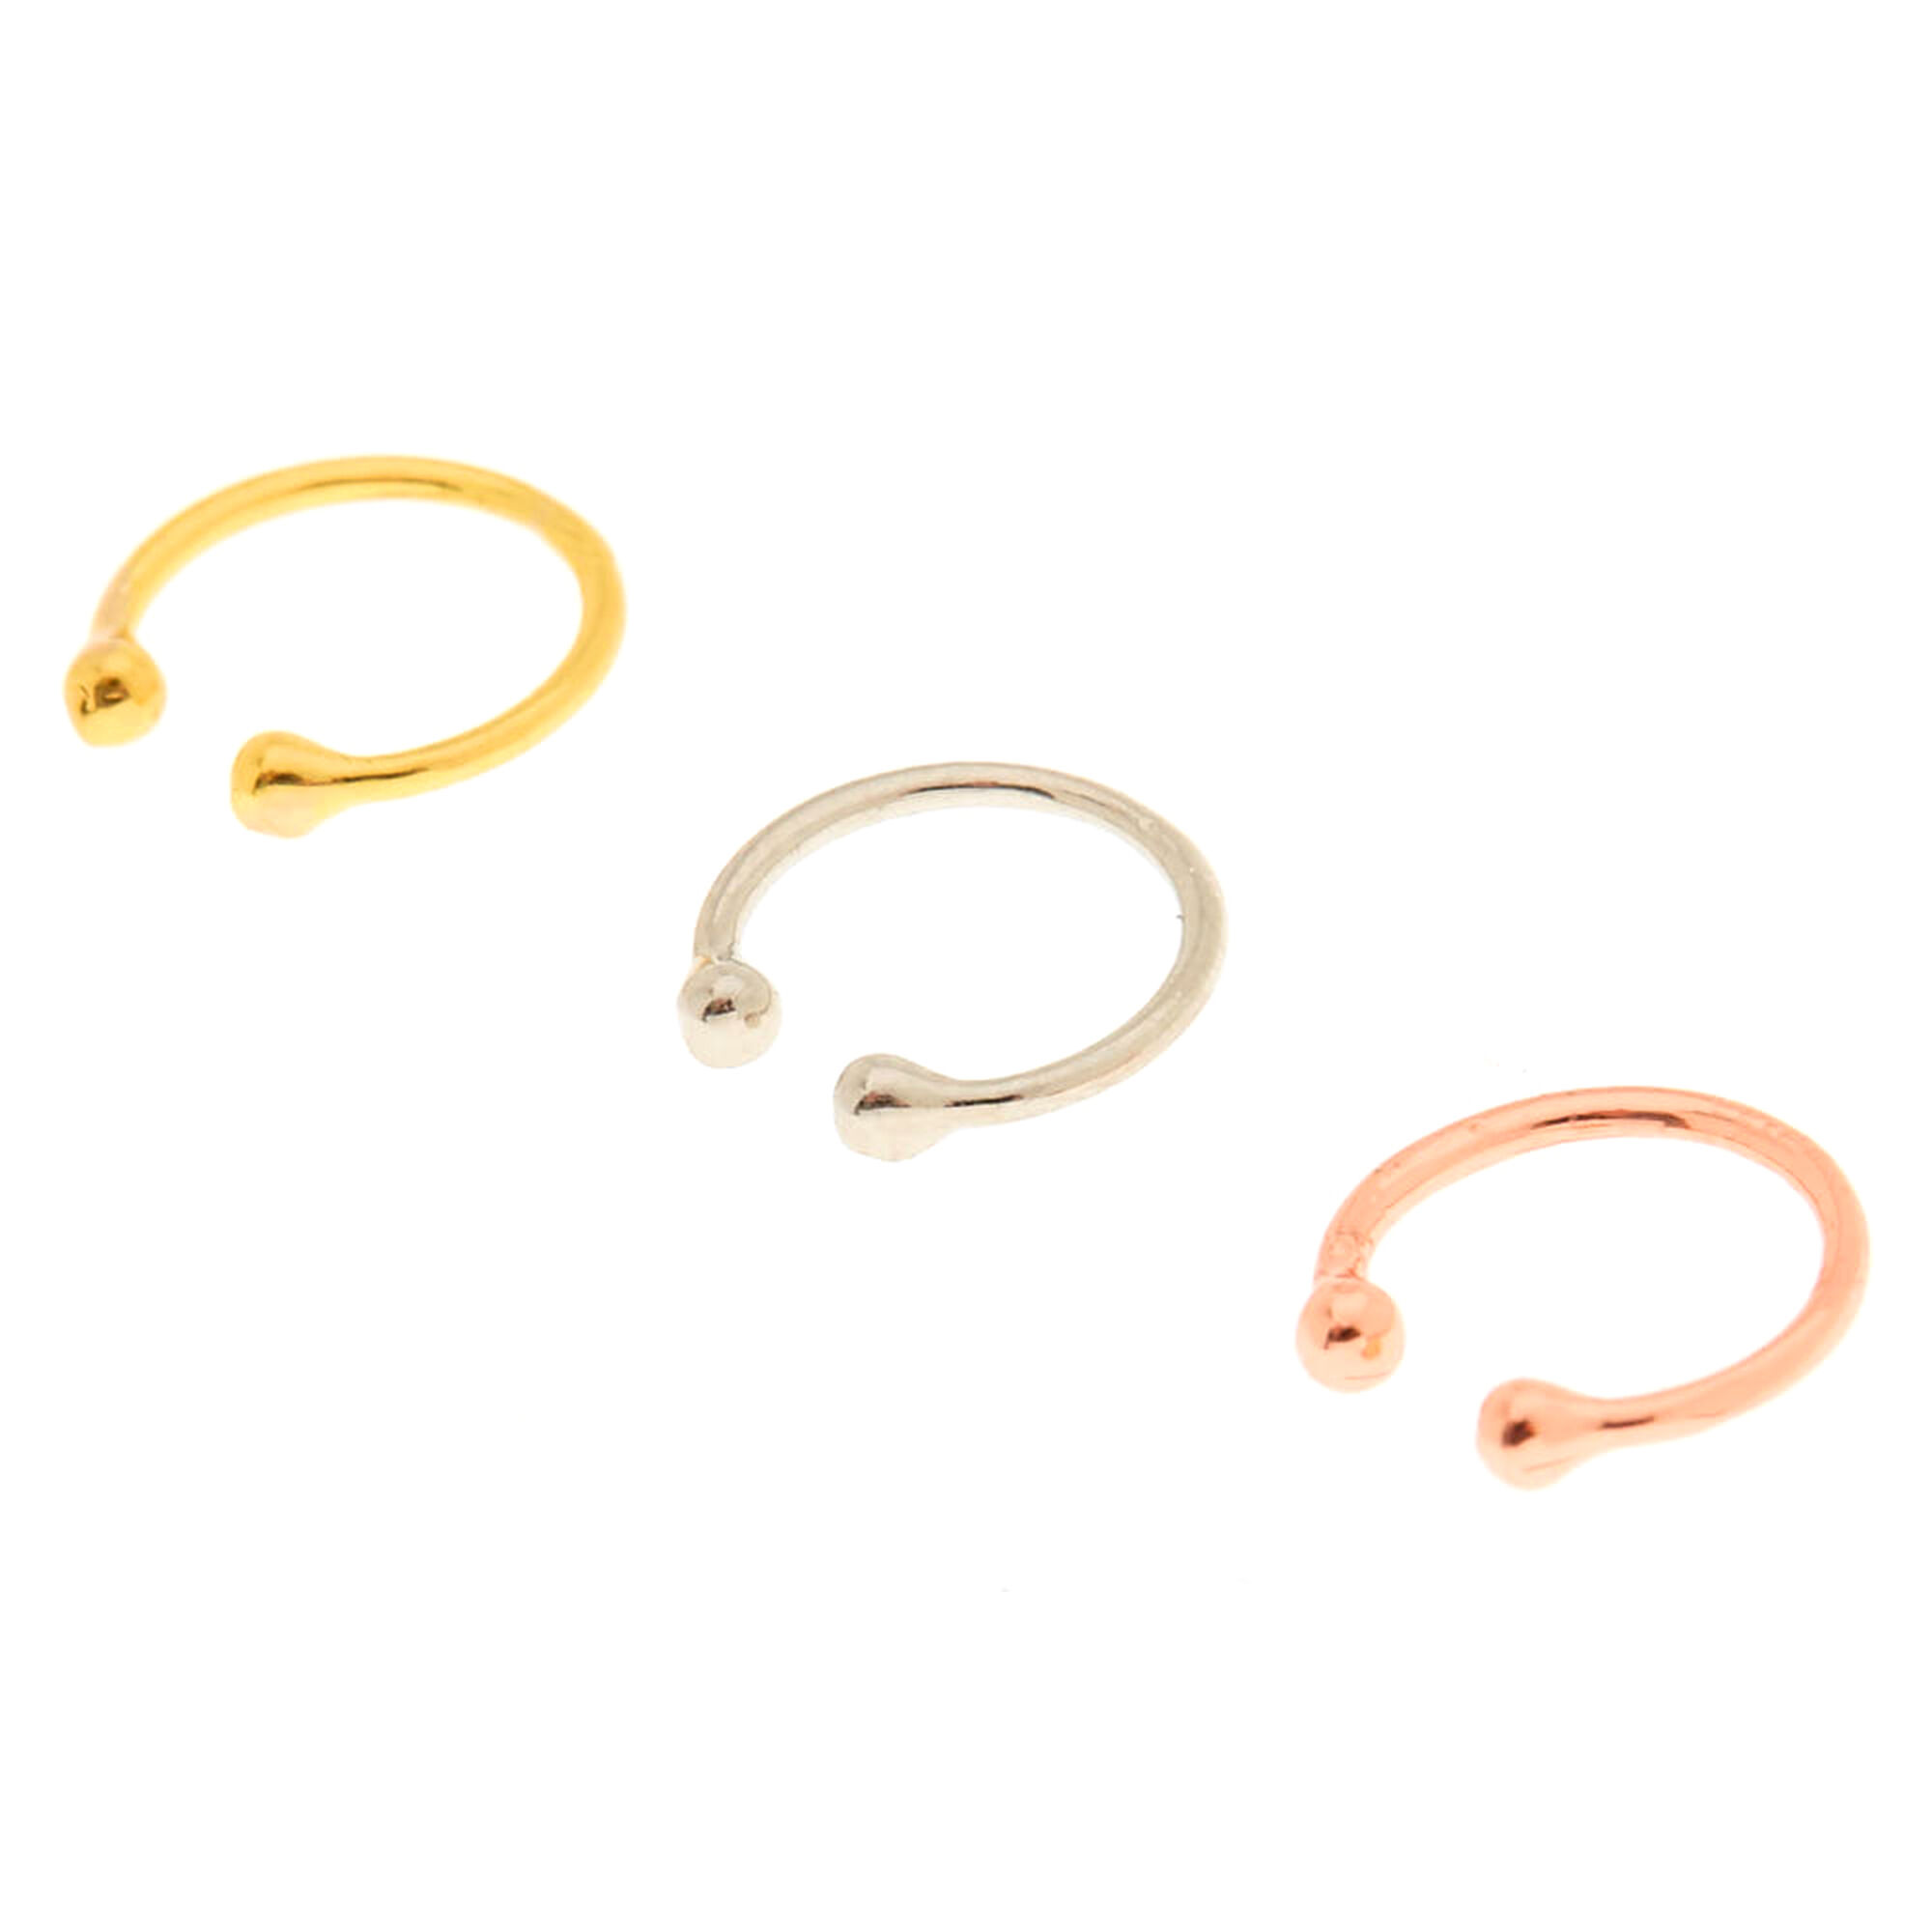 Mixed Metal Faux Nose Rings 3 Pack